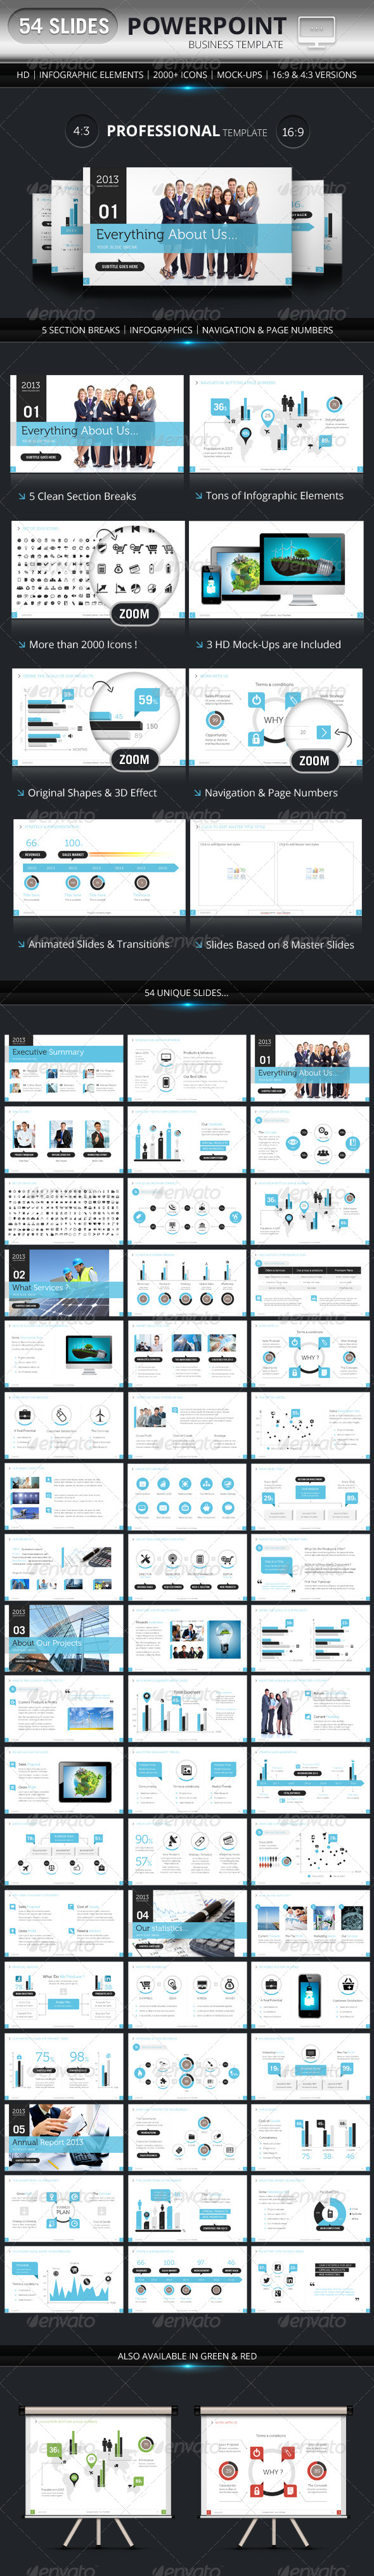 PowerPoint Business Presentation Template - Presentation Templates